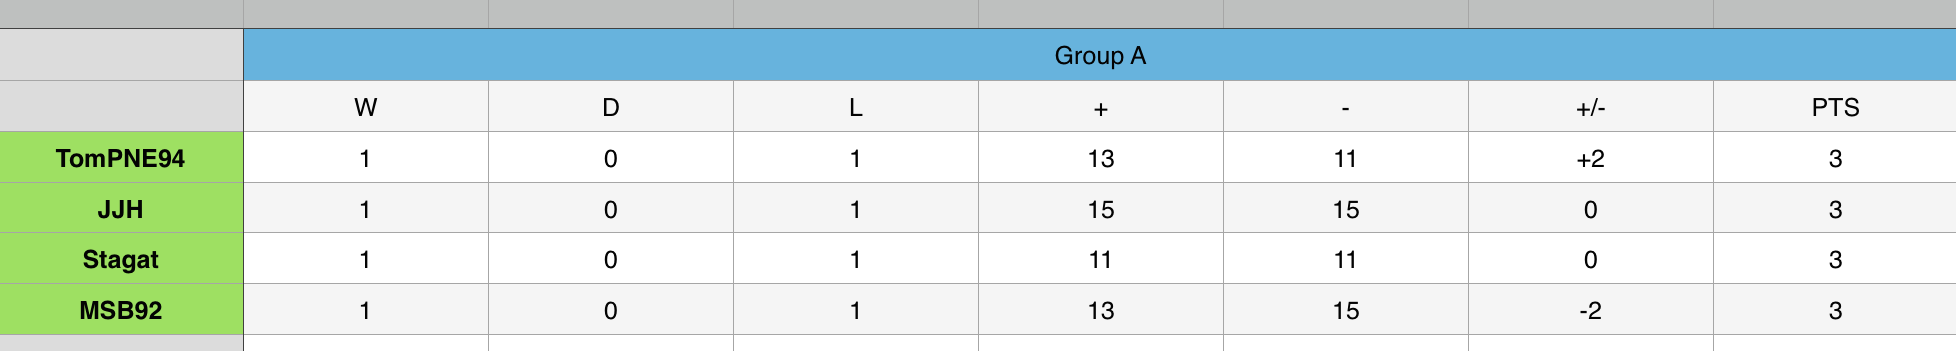 Group A 2.png